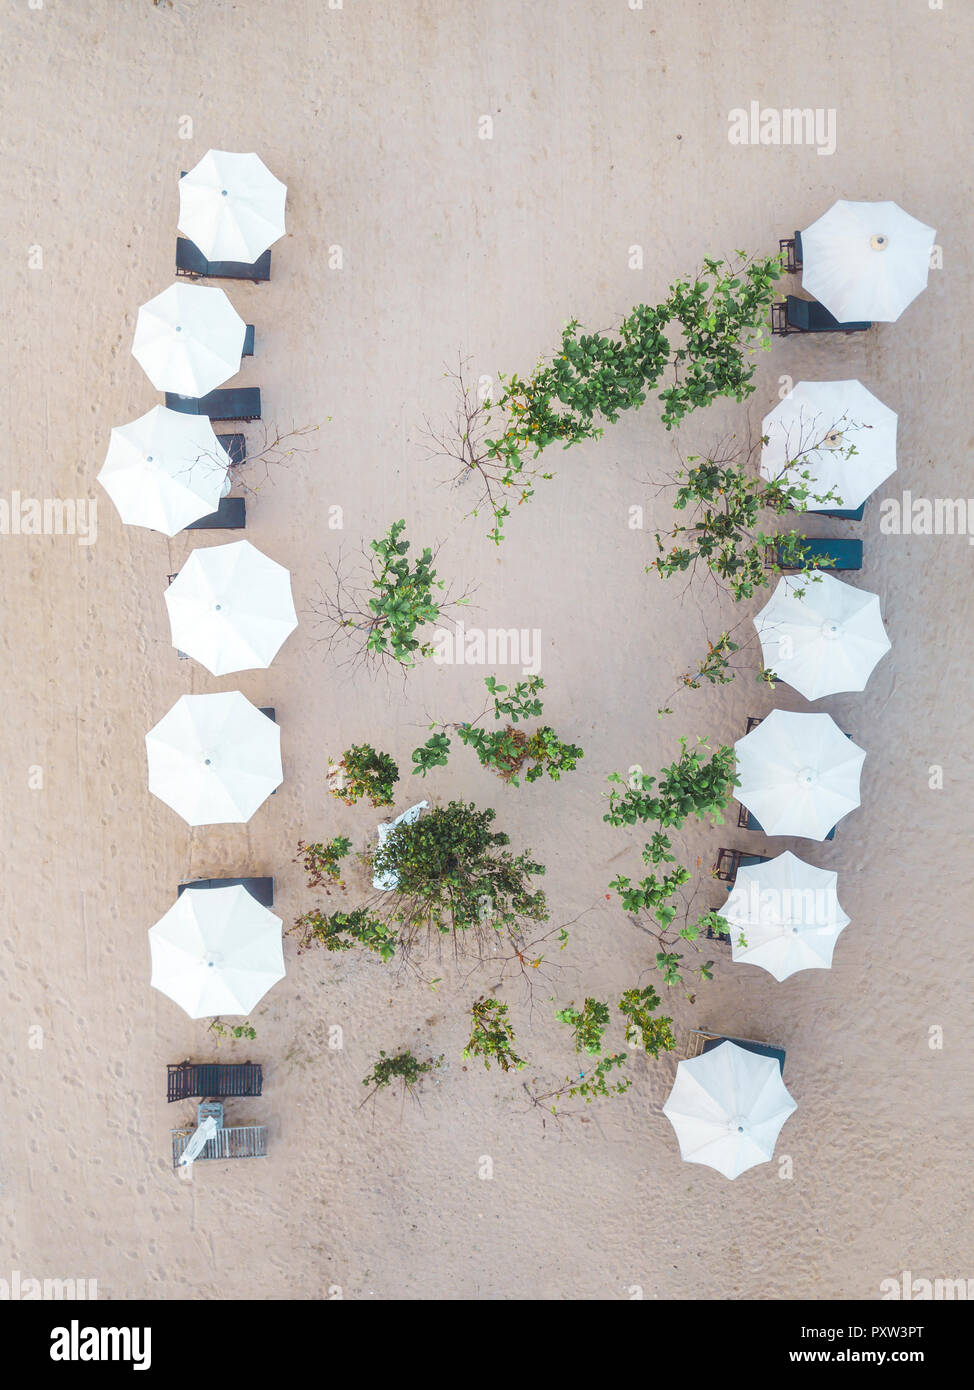 Indonesia, Bali, Aerial view of Nusa Dua beach, sun shades from above - Stock Image